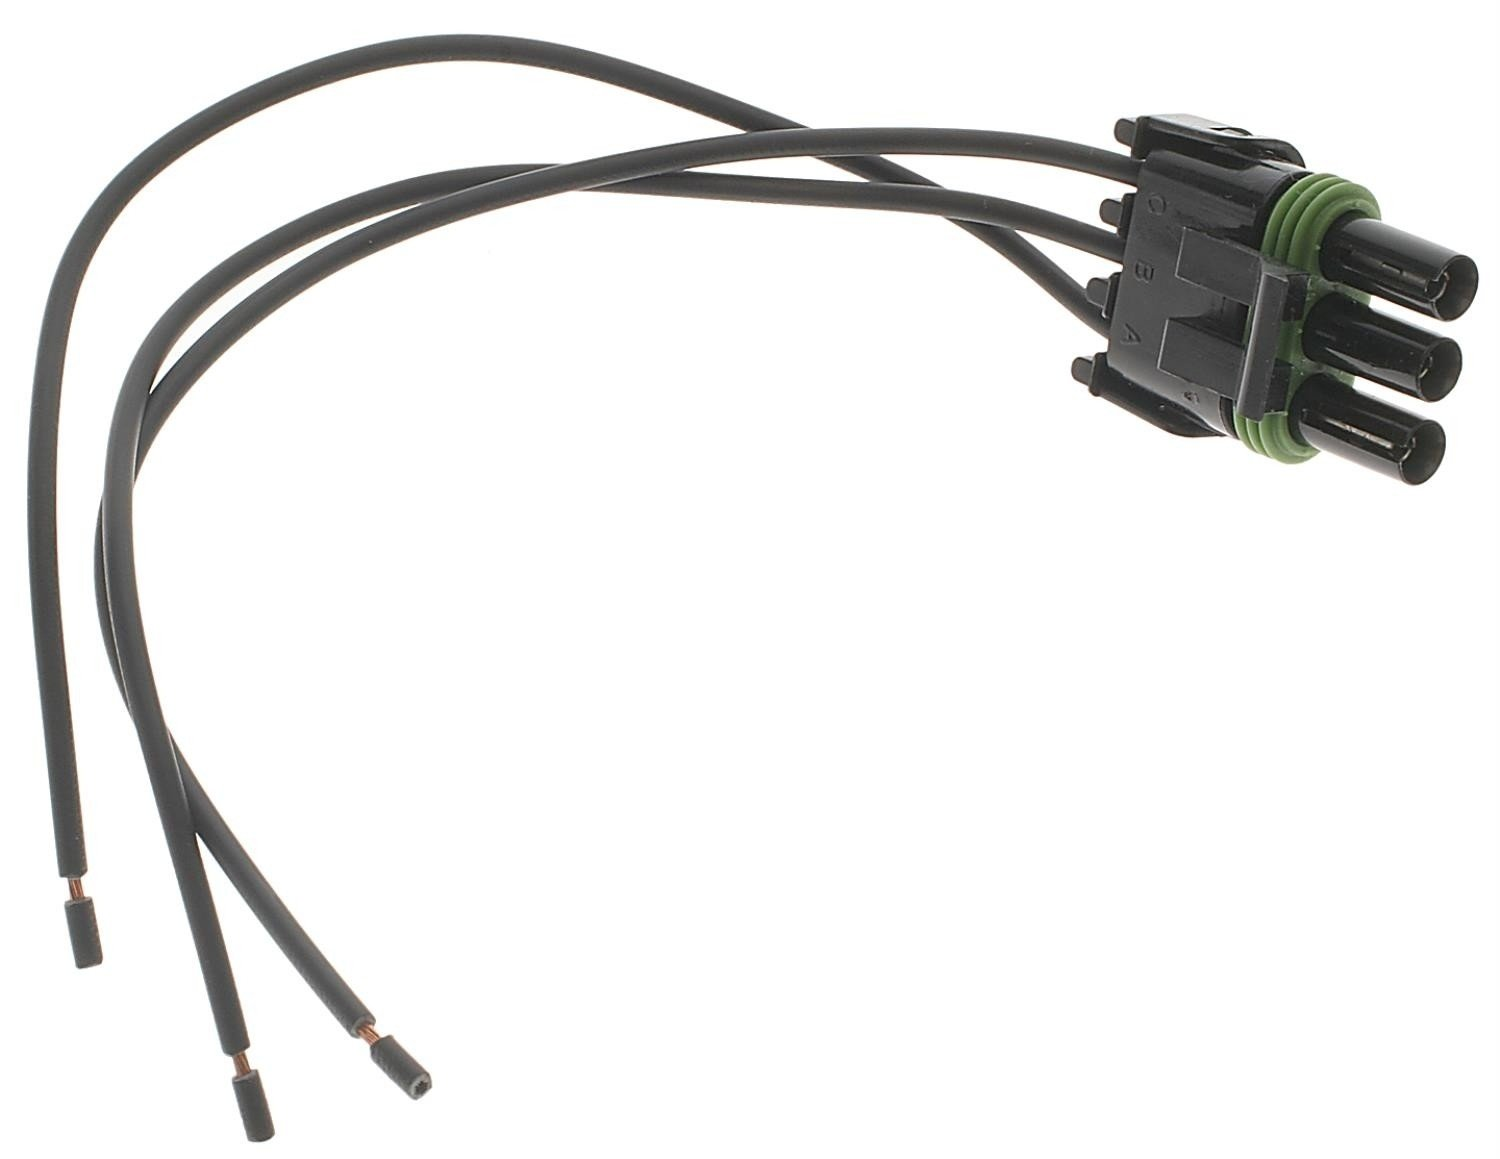 Acdelco Pt2366 Wiring Harness Connector Automotive 3 Wire